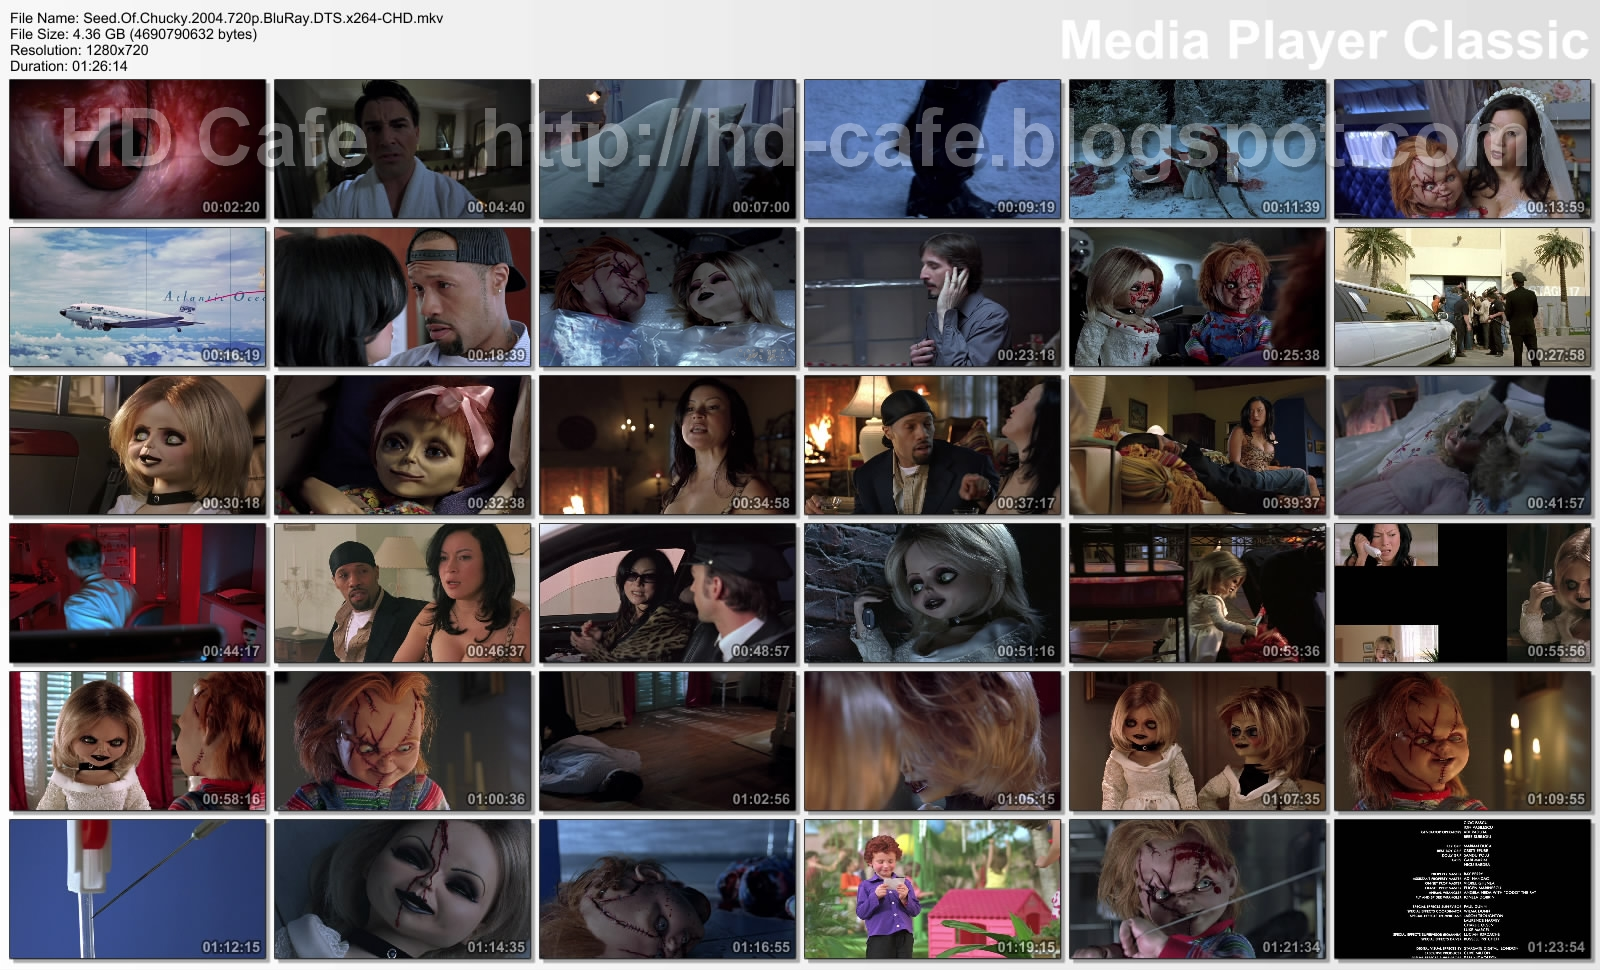 seed of chucky full movie in hindi dubbed 846